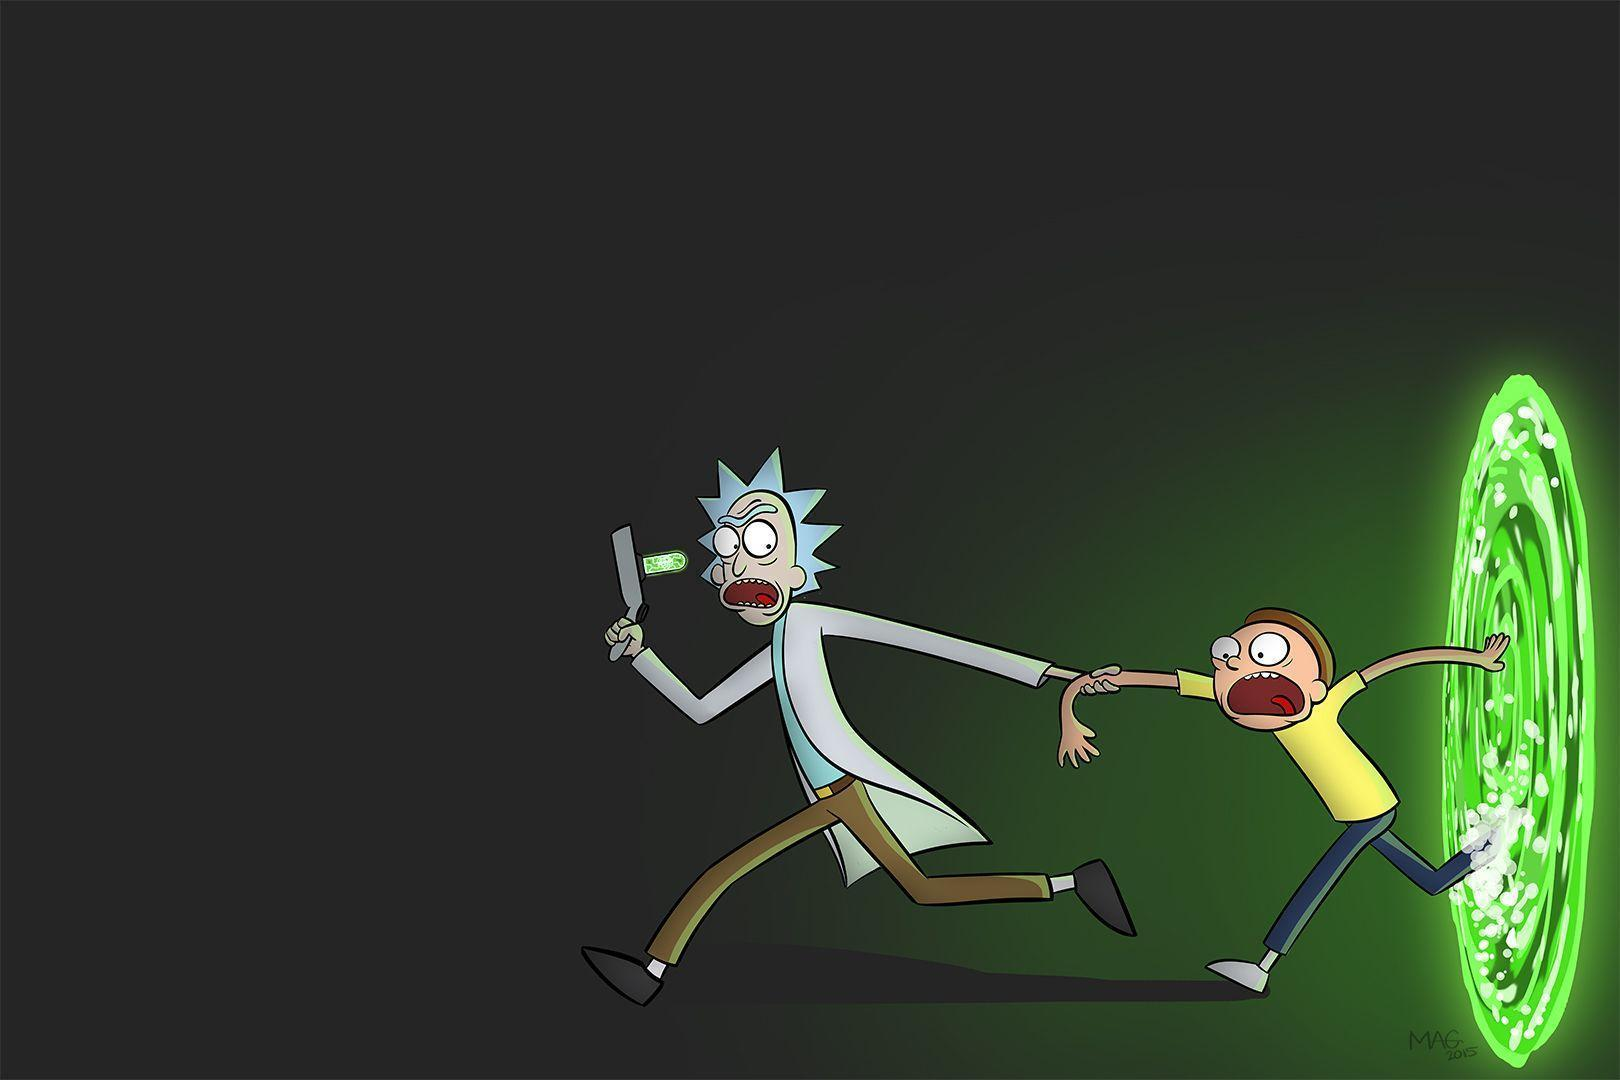 Rick and morty wallpapers wallpaper cave - Evil morty wallpaper 4k ...